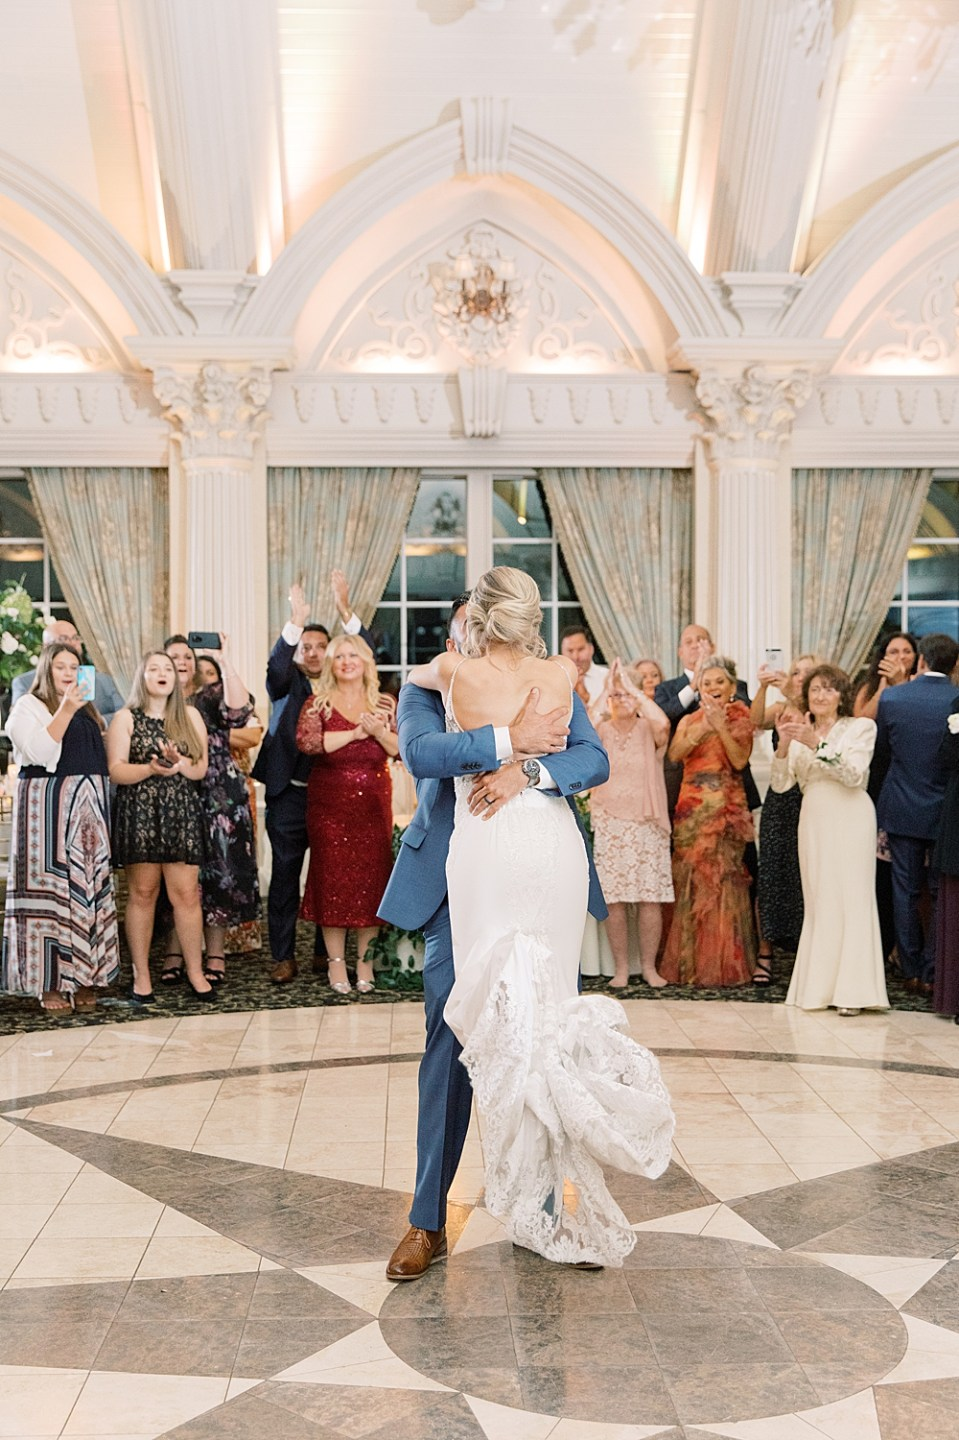 first dance | ashford estate wedding photography | sarah canning photography